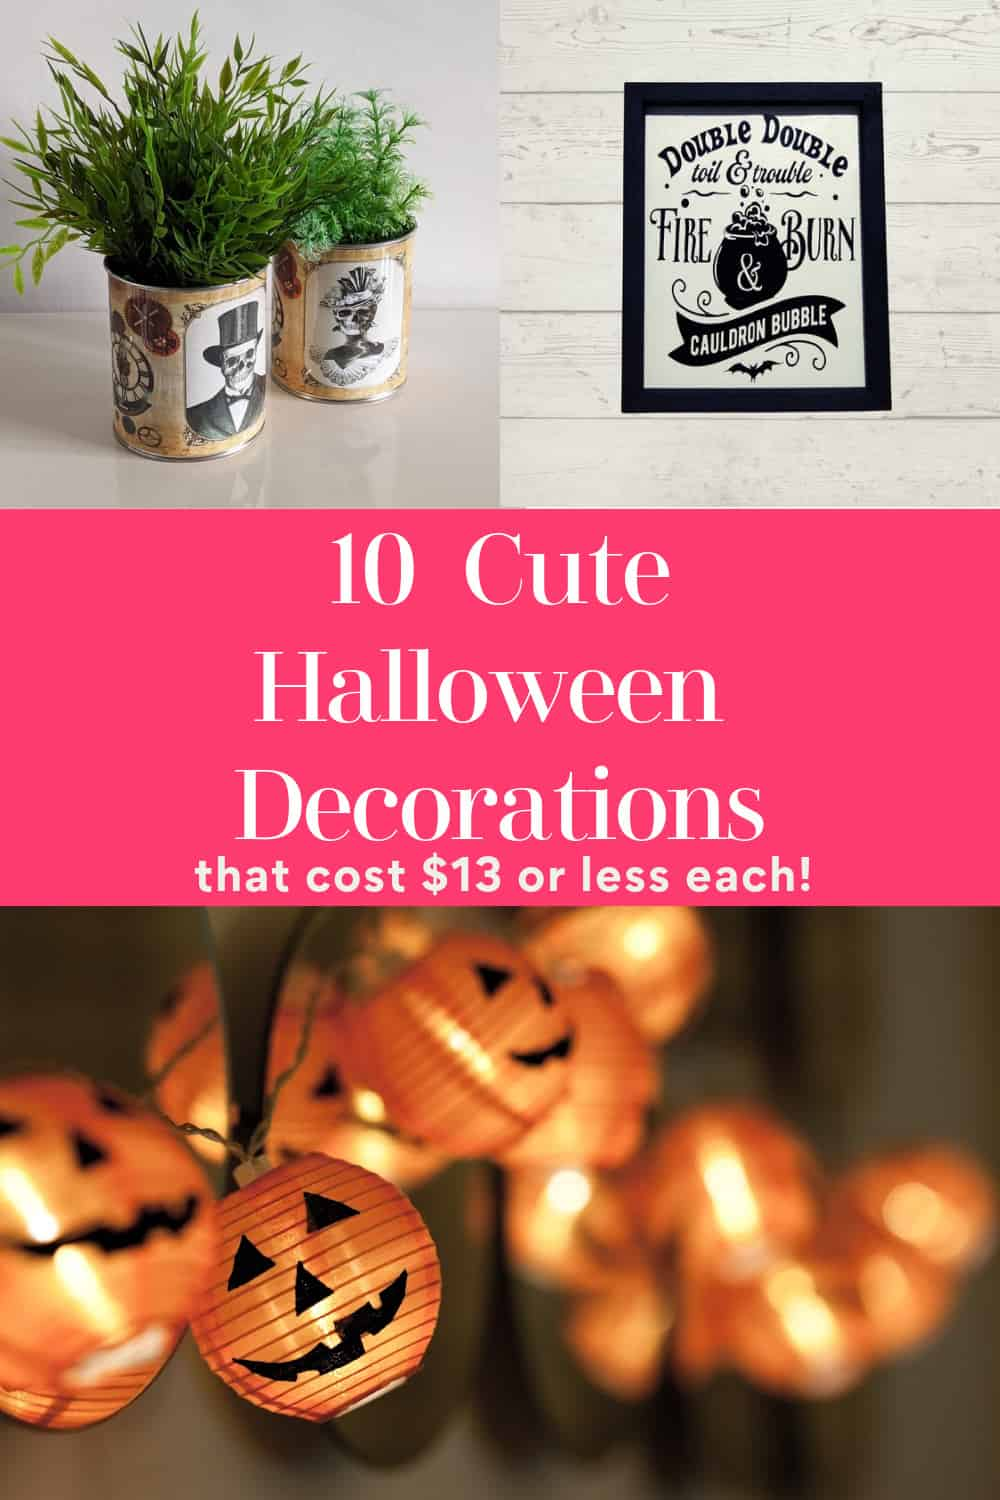 """Get into the spooky spirit without busting your budget with these """"spooktacular"""" Halloween decorations that cost $13 or less! Check them out!"""